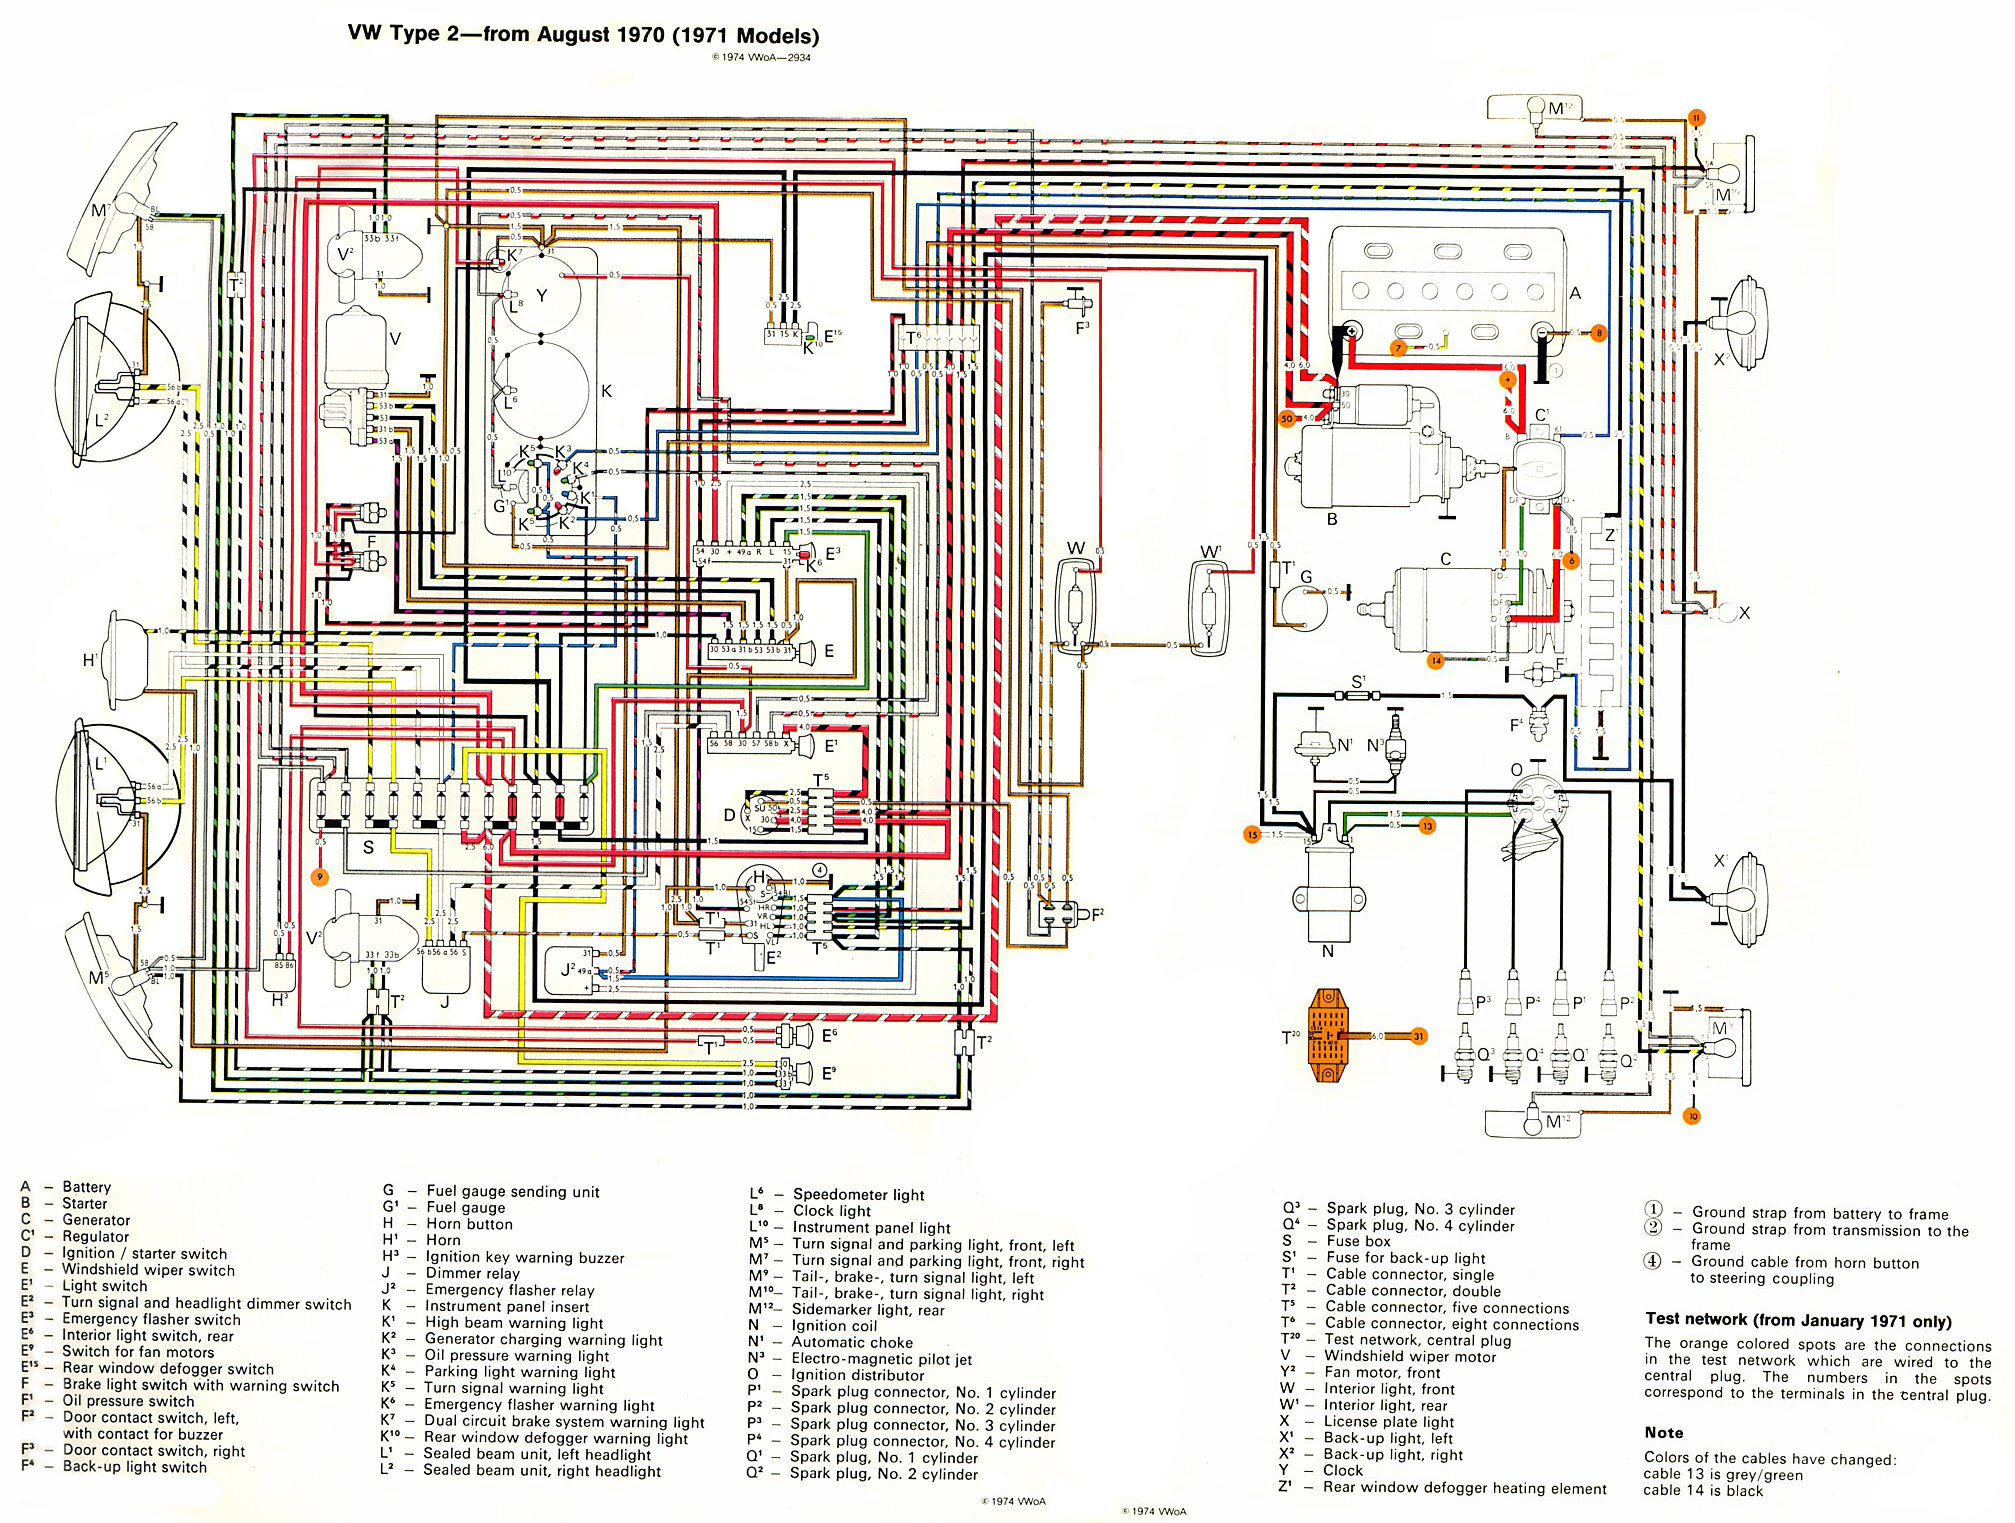 baybus_71_fixed thesamba com type 2 wiring diagrams vw t4 electric window wiring diagram at gsmx.co